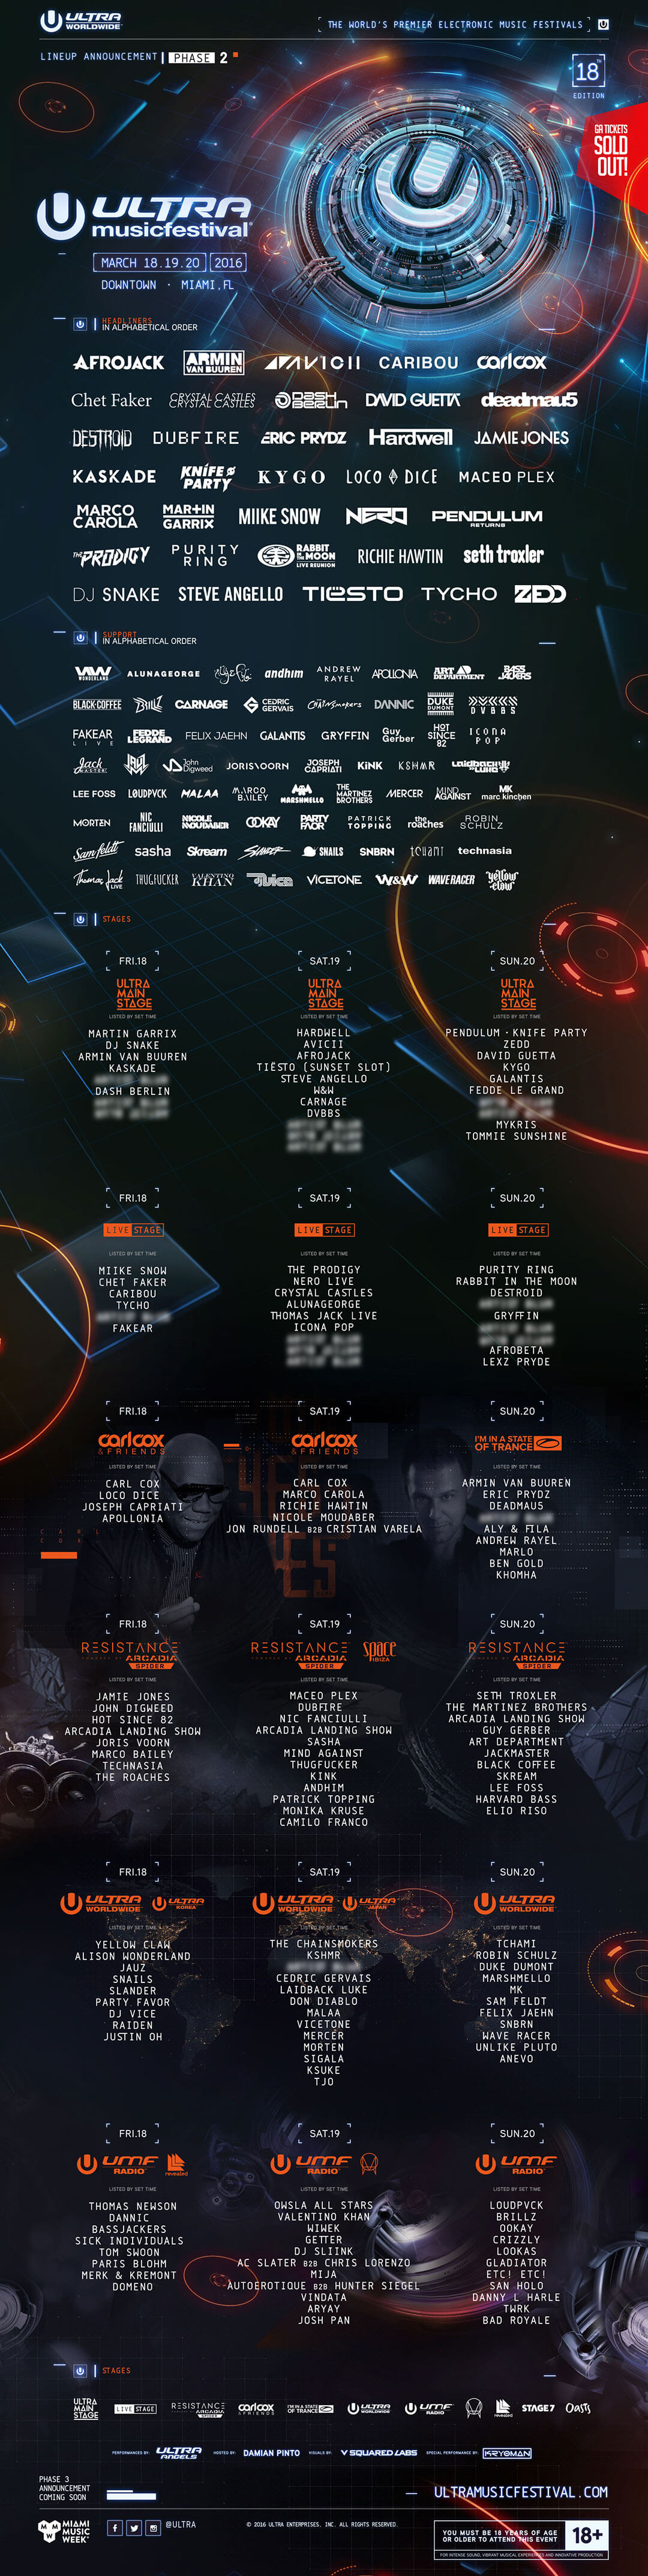 Ultra Miami Unveils Phase 2 Lineup with Stage Announcements